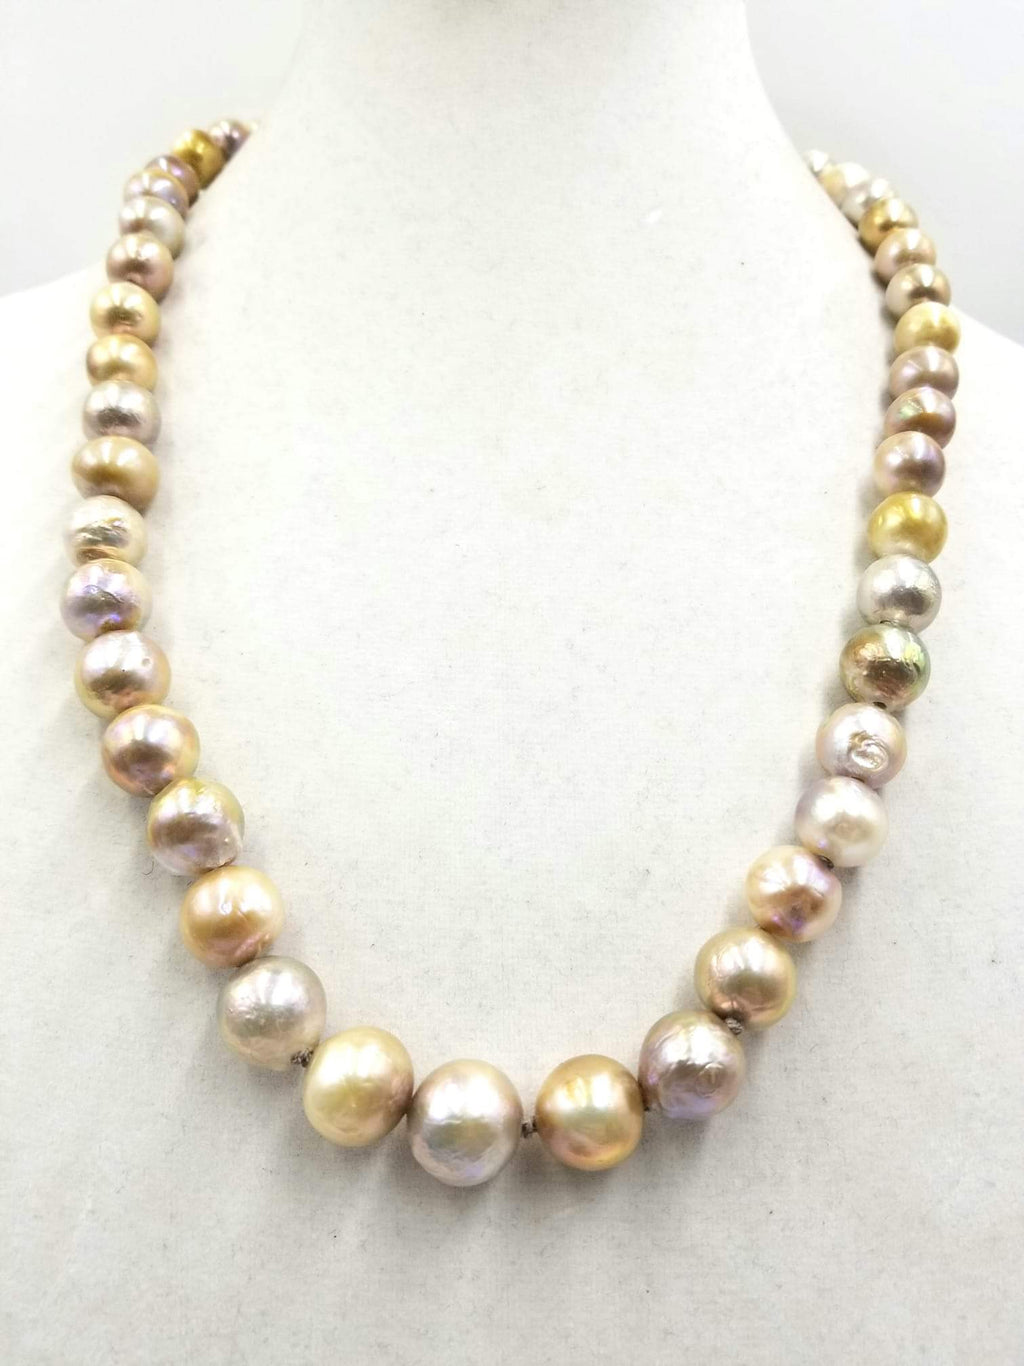 Splendid graduated South Seas Pearl necklace with 14K yellow gold clasp. hand-knotted with dove gray silk.